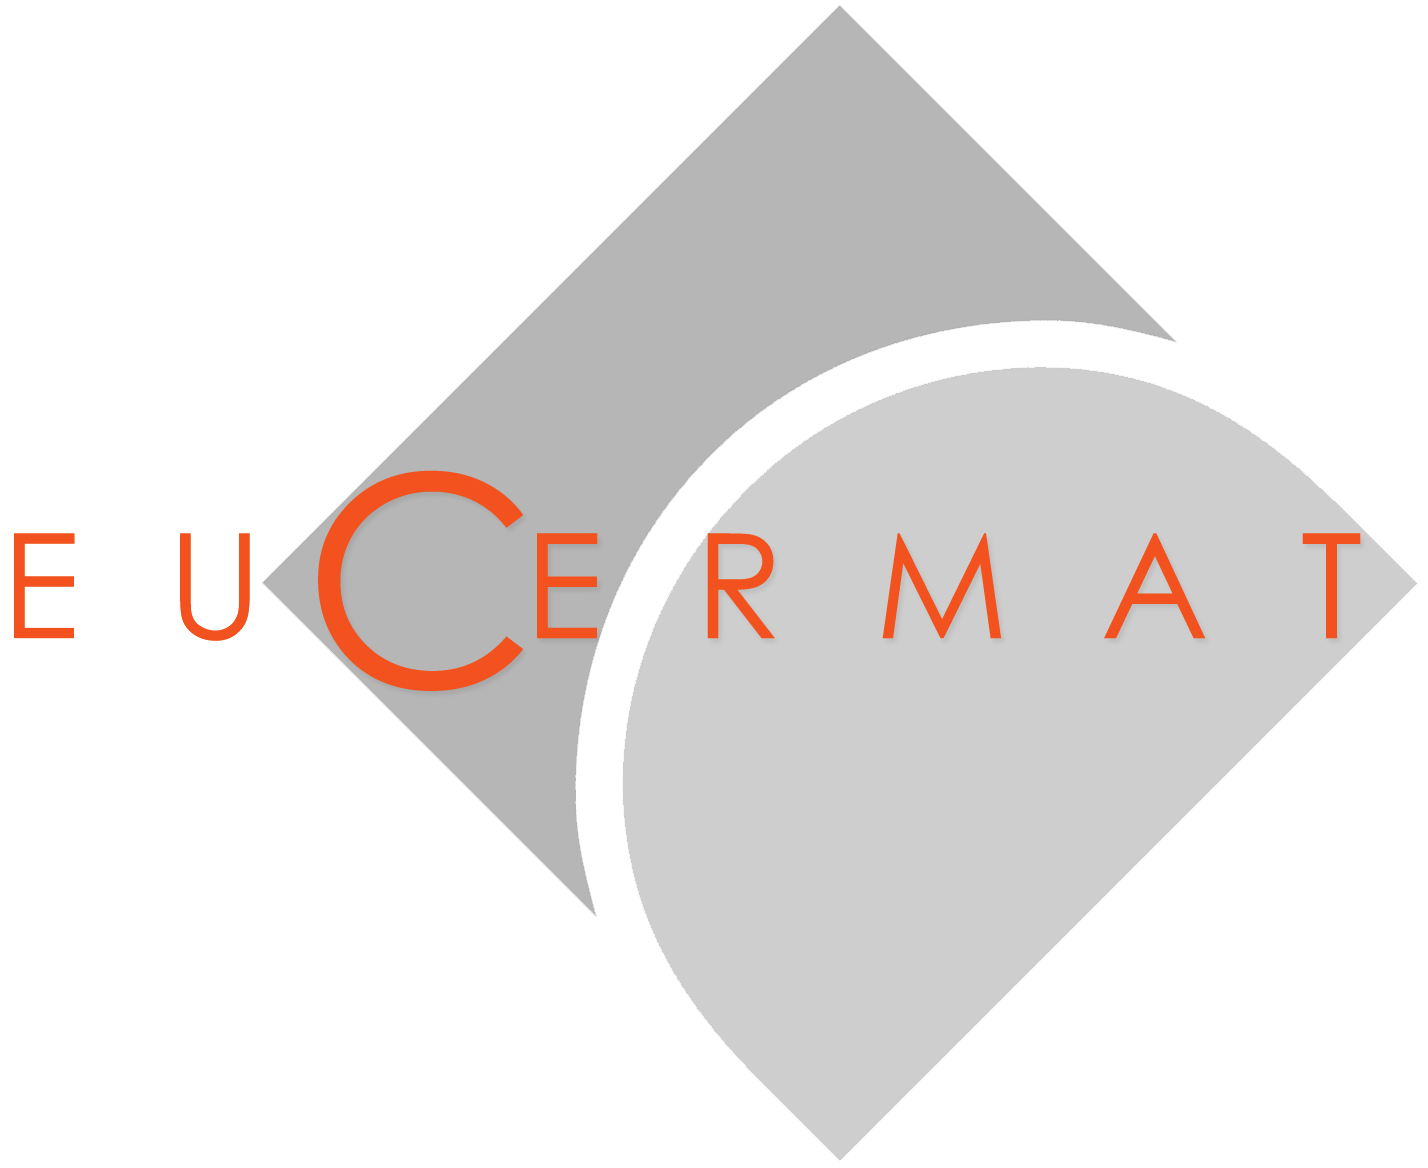 EUCERMAT European project